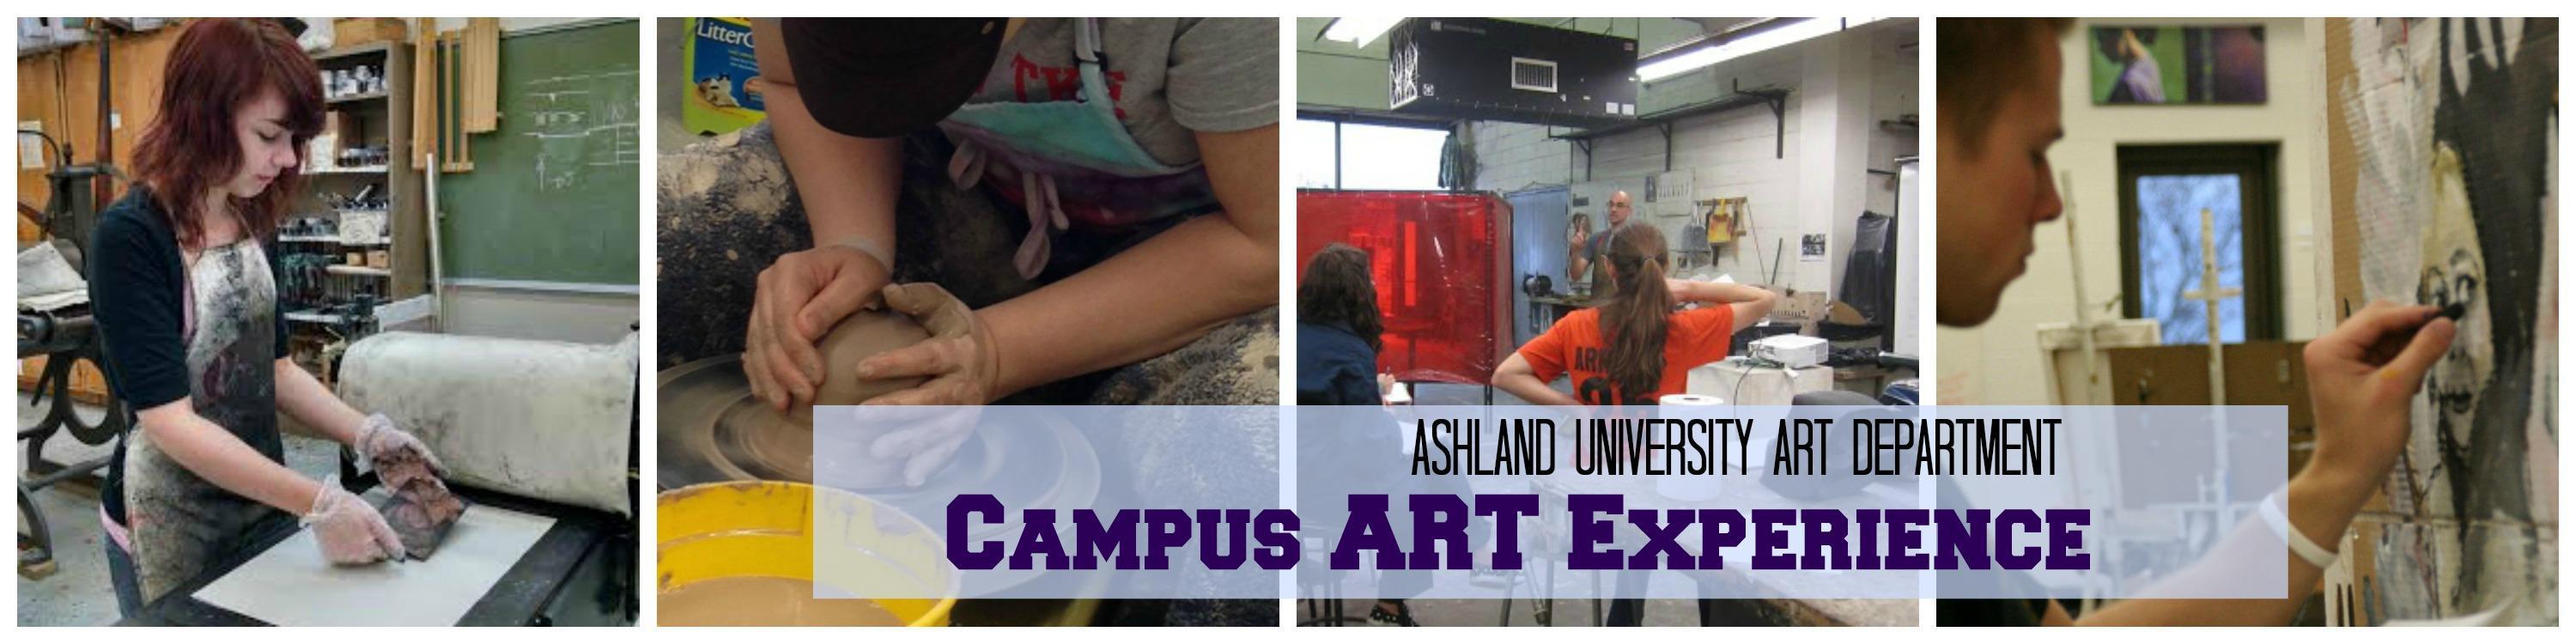 High School Art Experience 2016